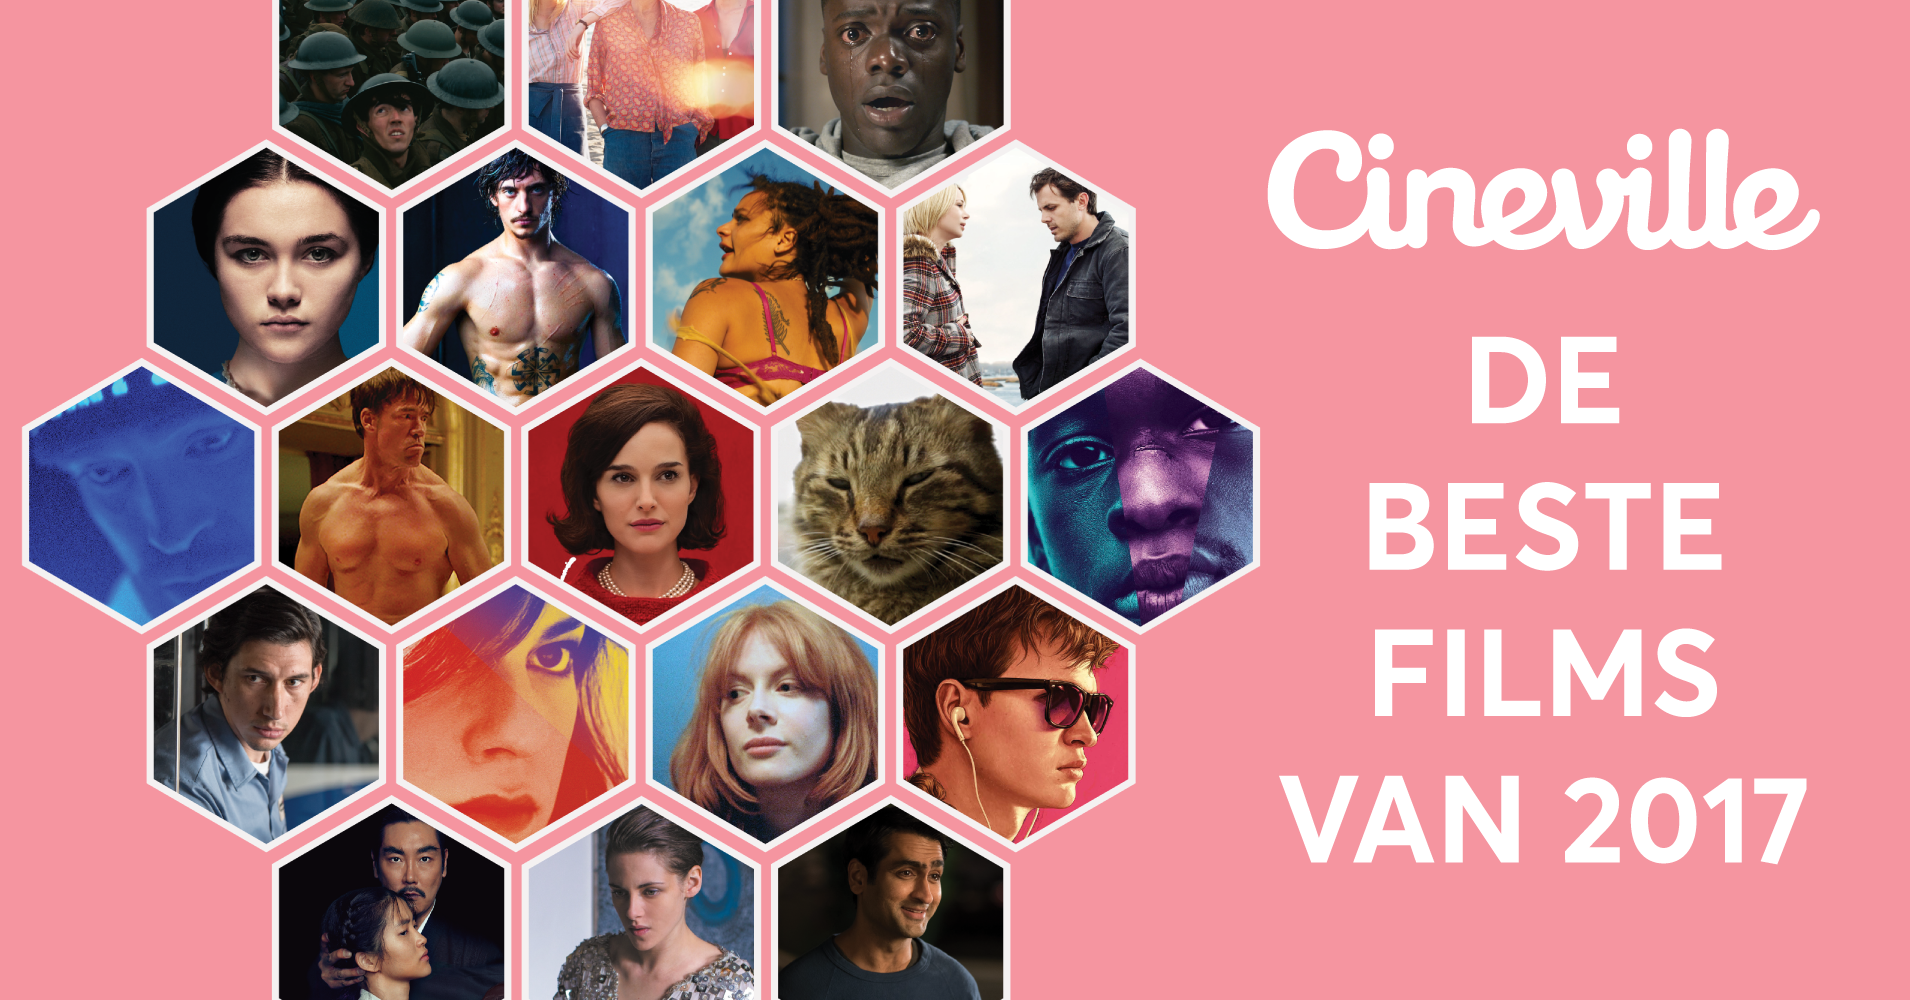 FC HYENA PRESENTEERT: CINEVILLE PRE PARTY – DE BESTE FILMS VAN 2017